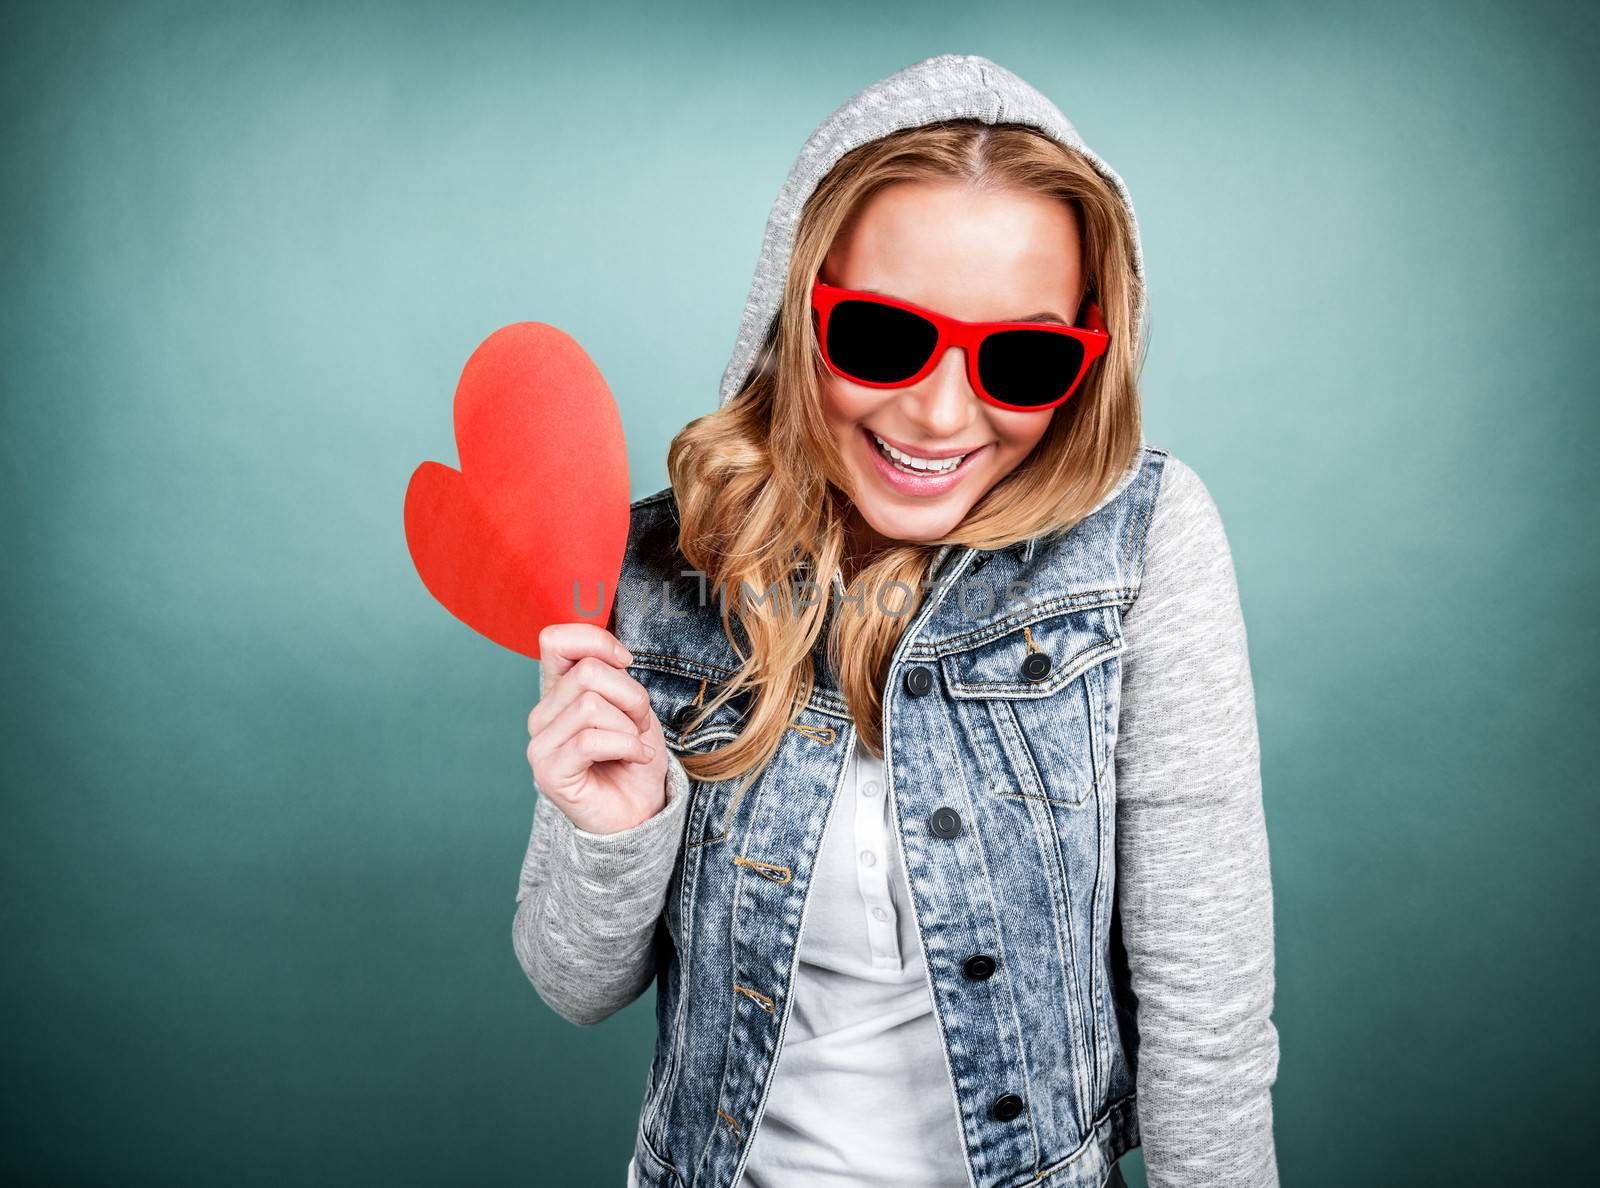 Happy romantic girl laughing on blue background, wearing stylish jacket with hood and sunglasses, holding red heart-shaped Valentine day card